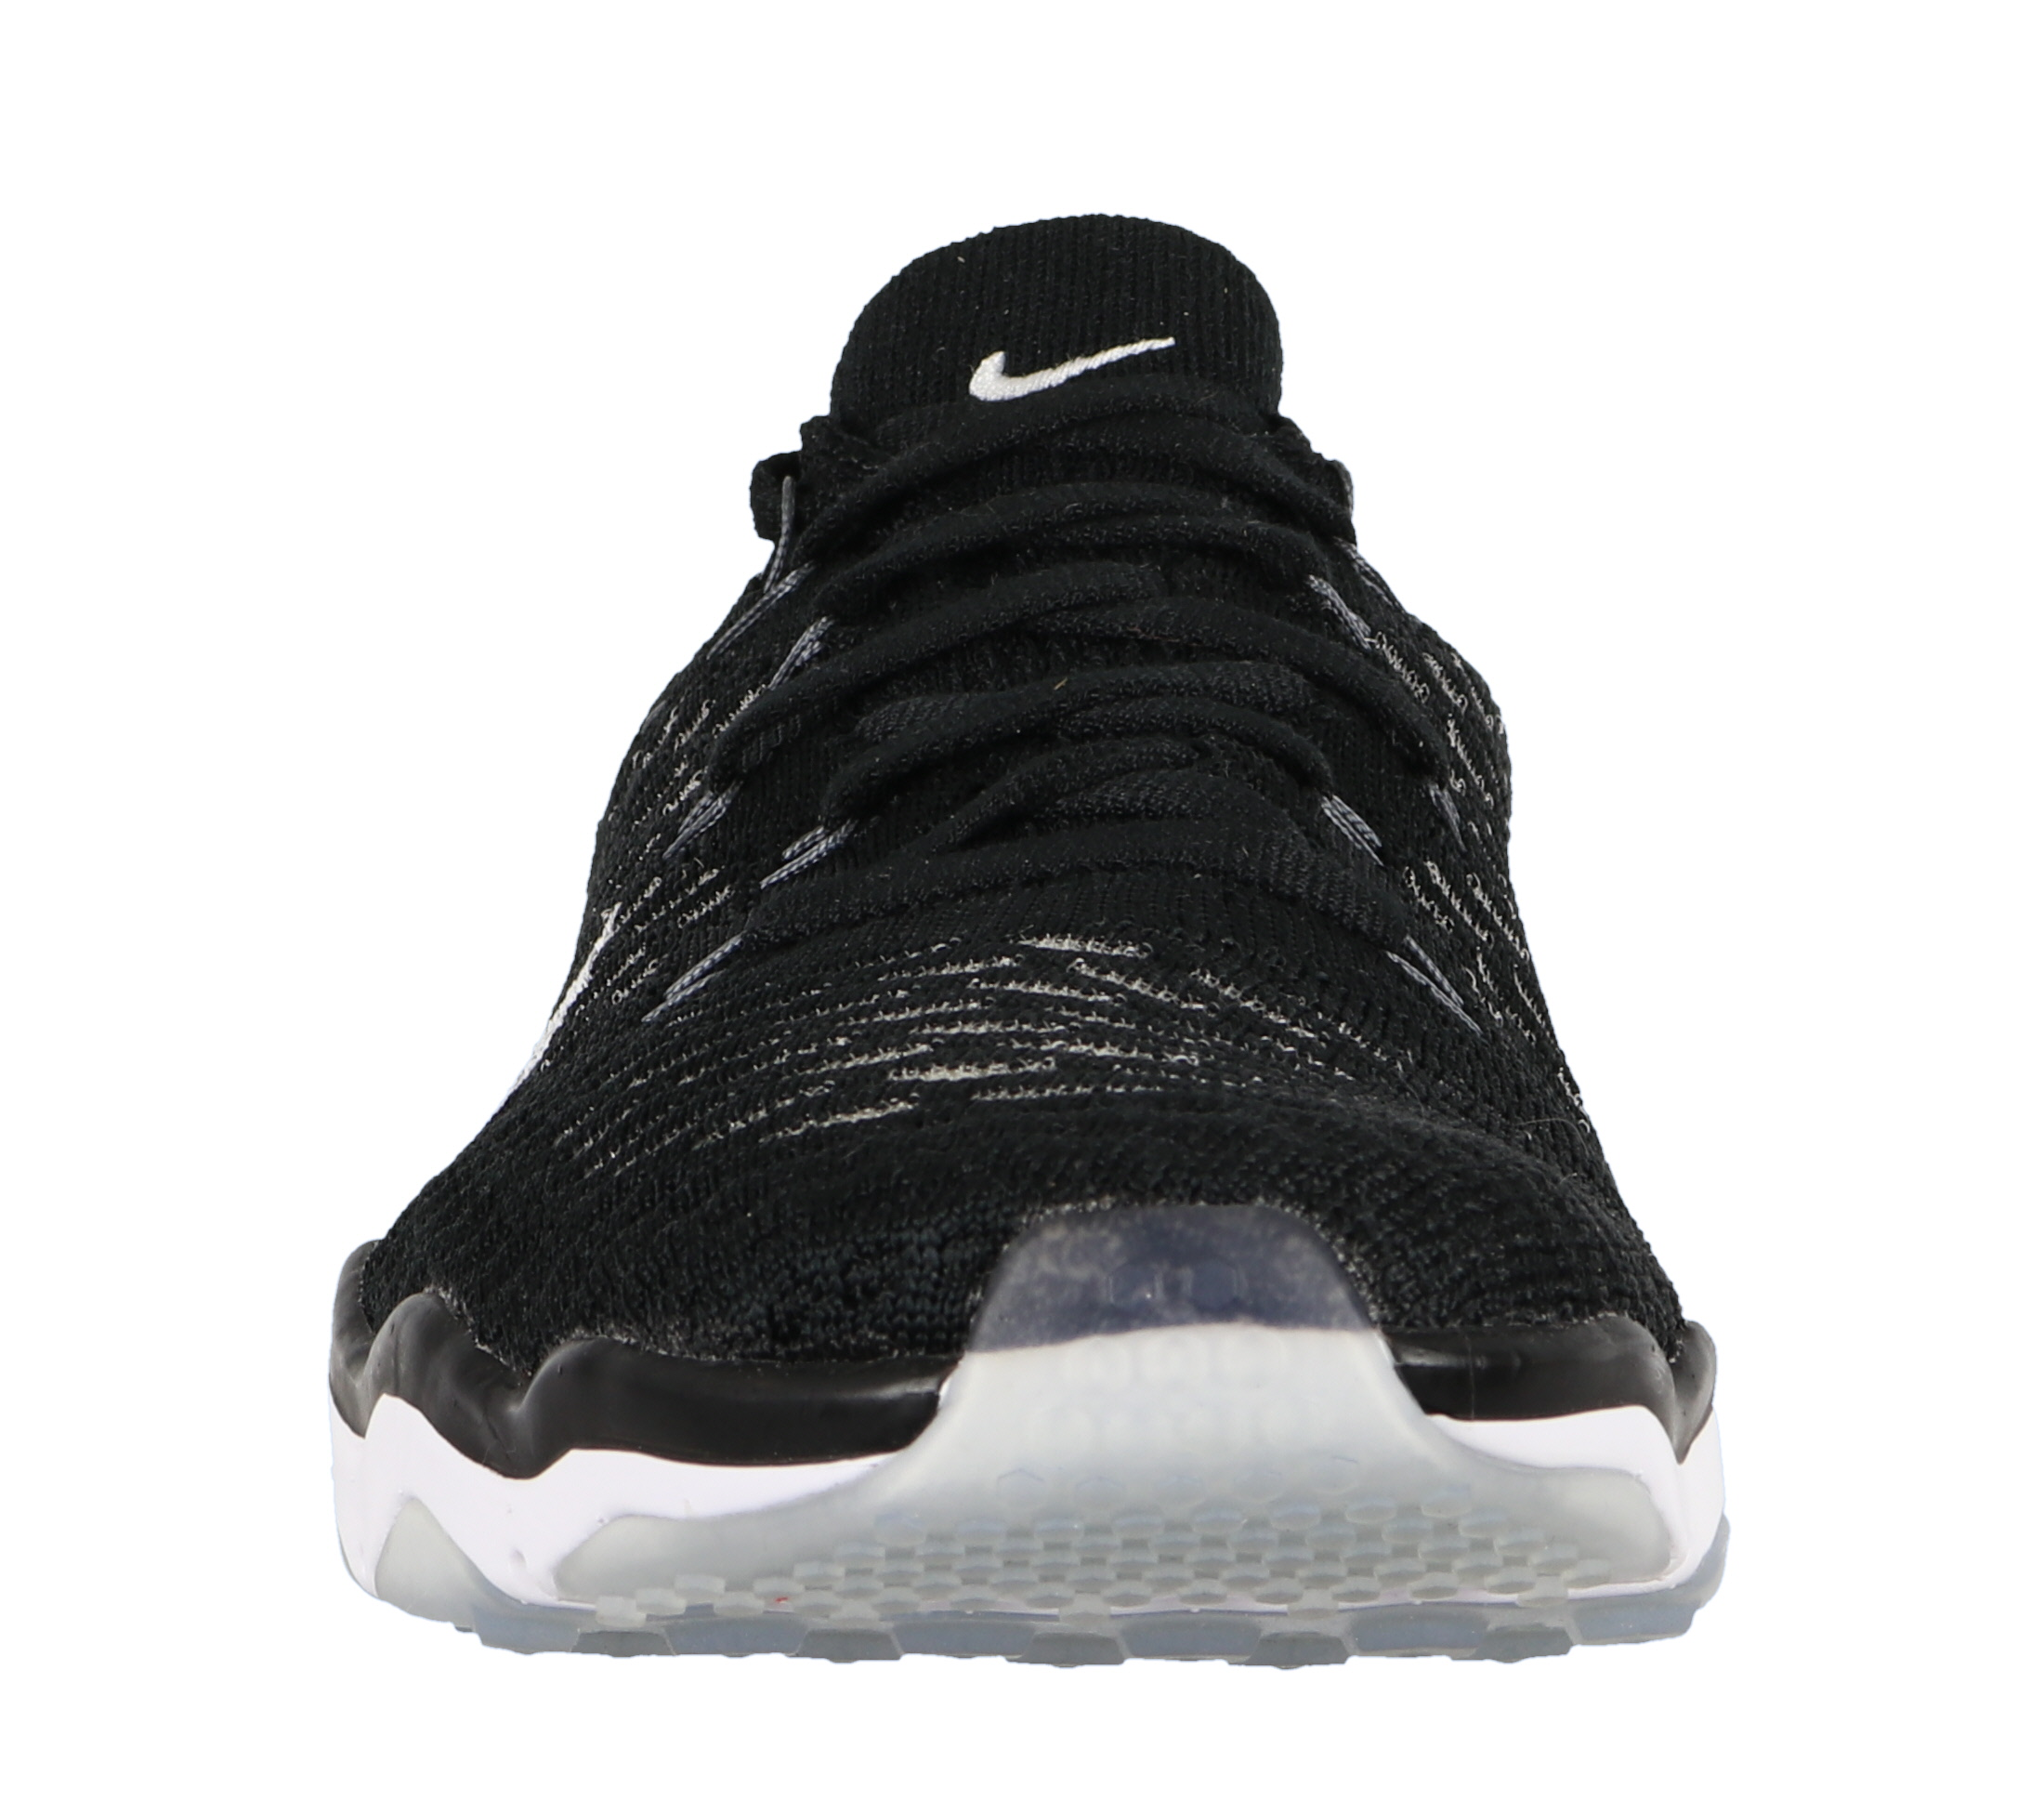 Nike Women's Cross Air Zoom Fearless Flyknit Cross Women's Training Shoes Black White f2edf6